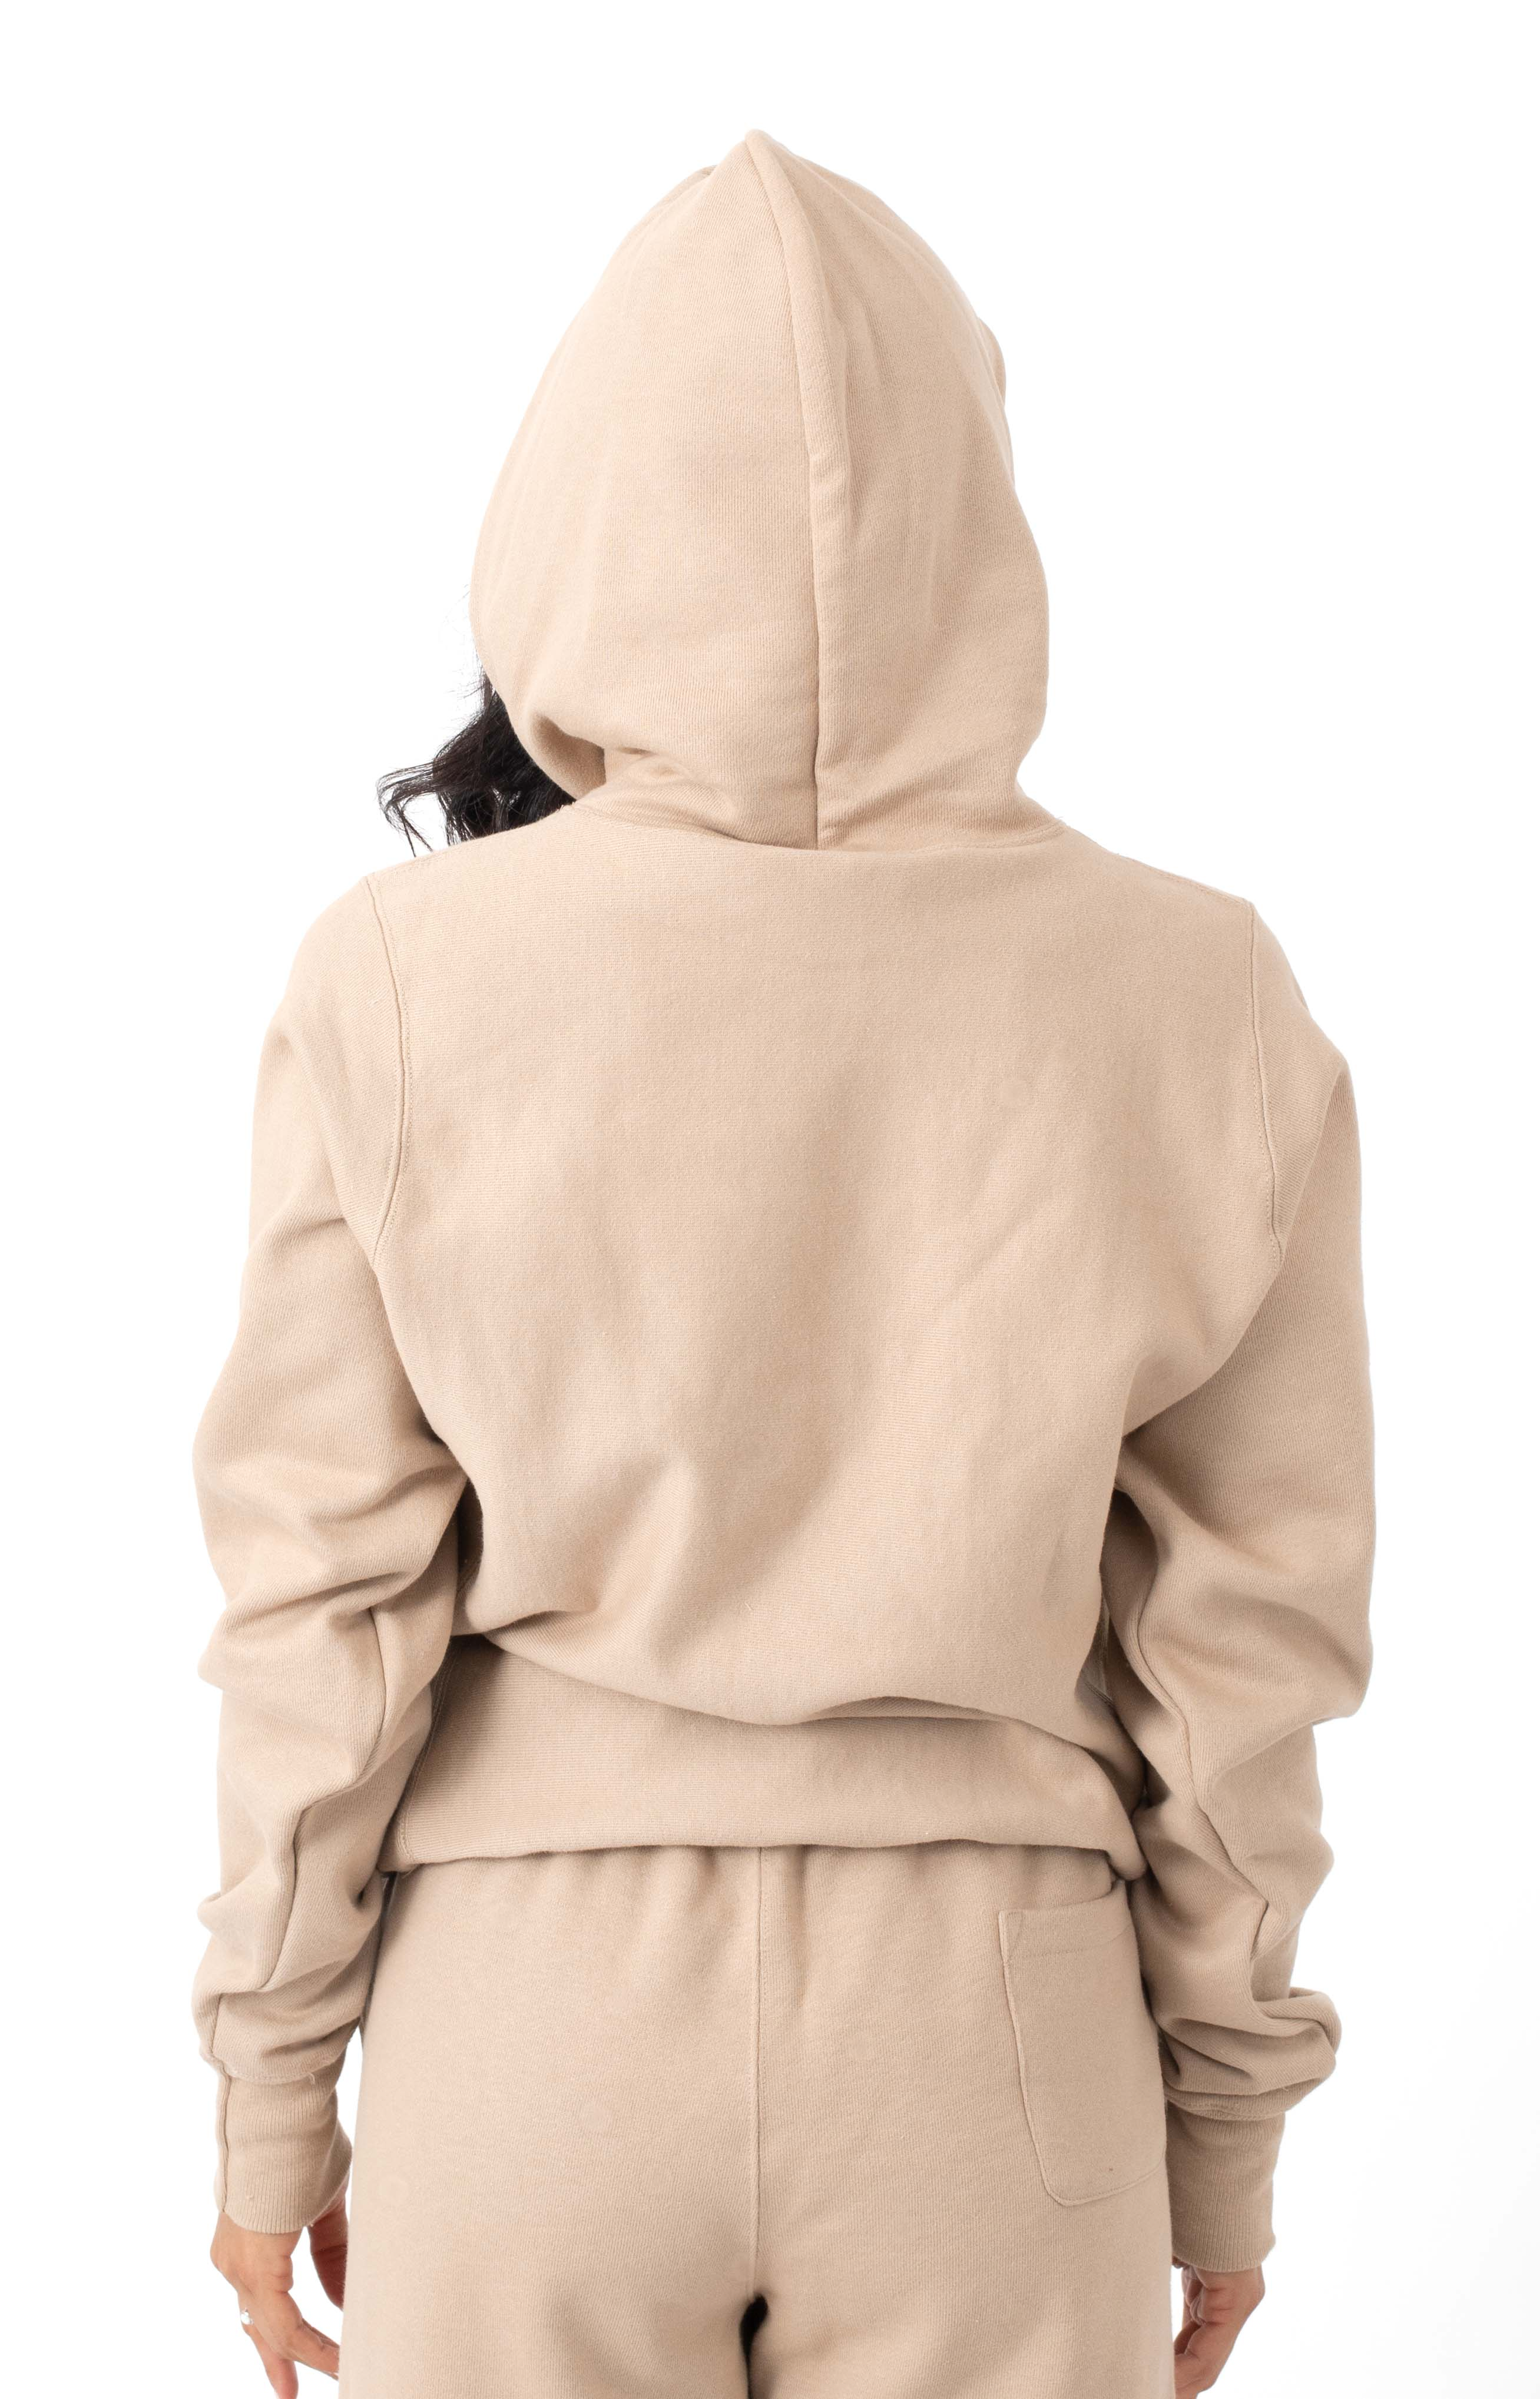 Reverse Weave Pullover Hoodie - Country Walnut  3